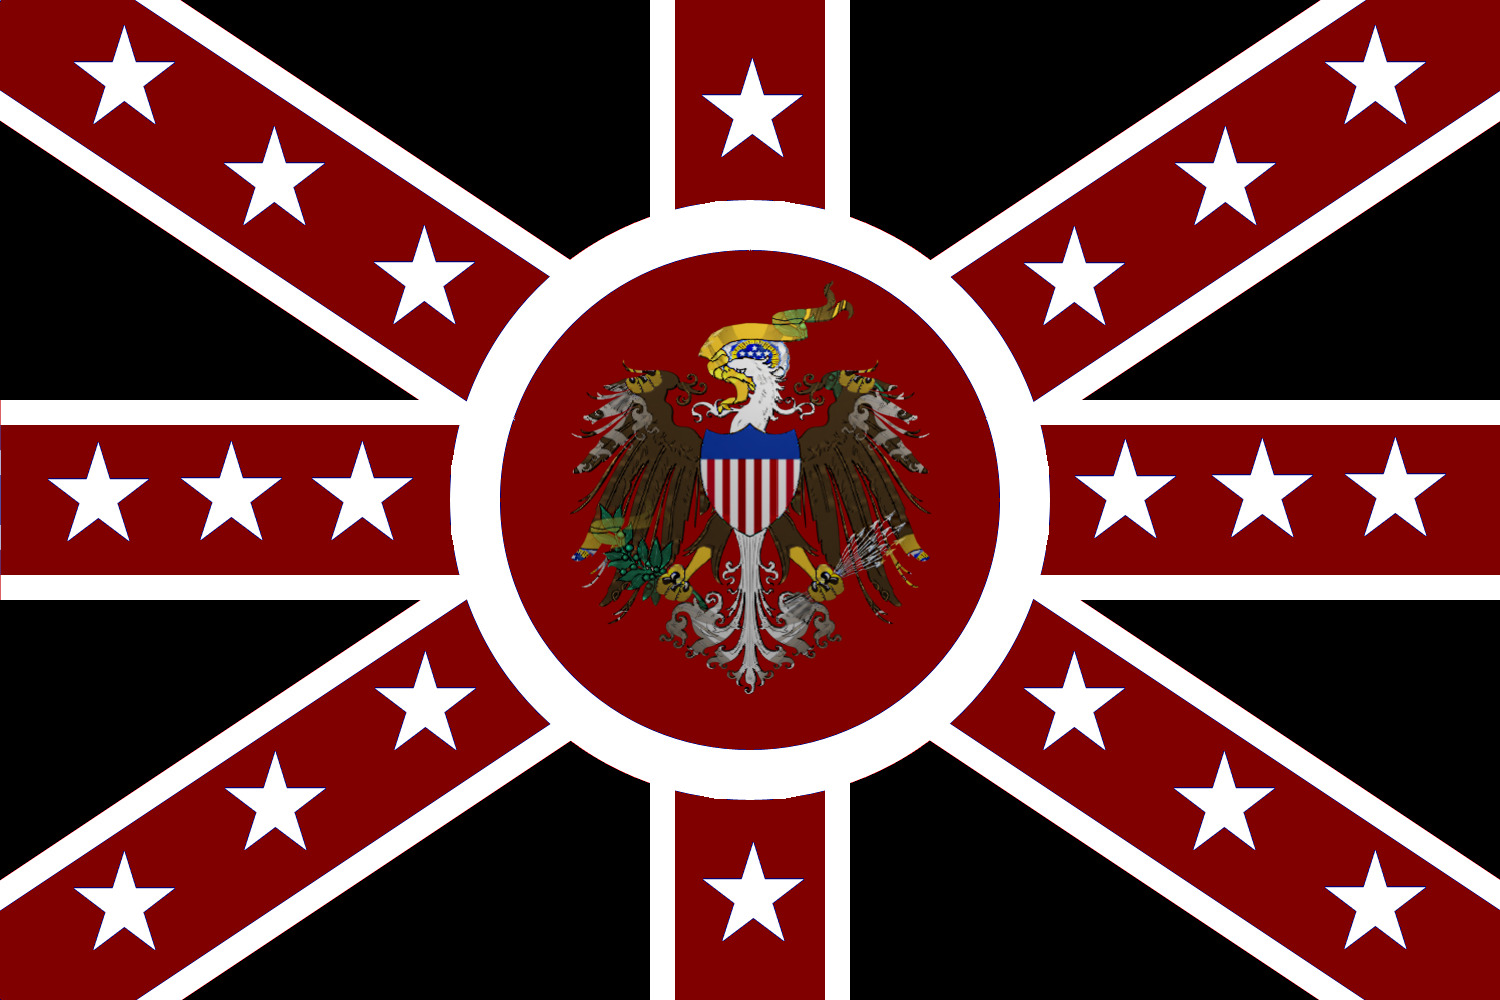 Flag of the American Empire by Beastboss on DeviantArt